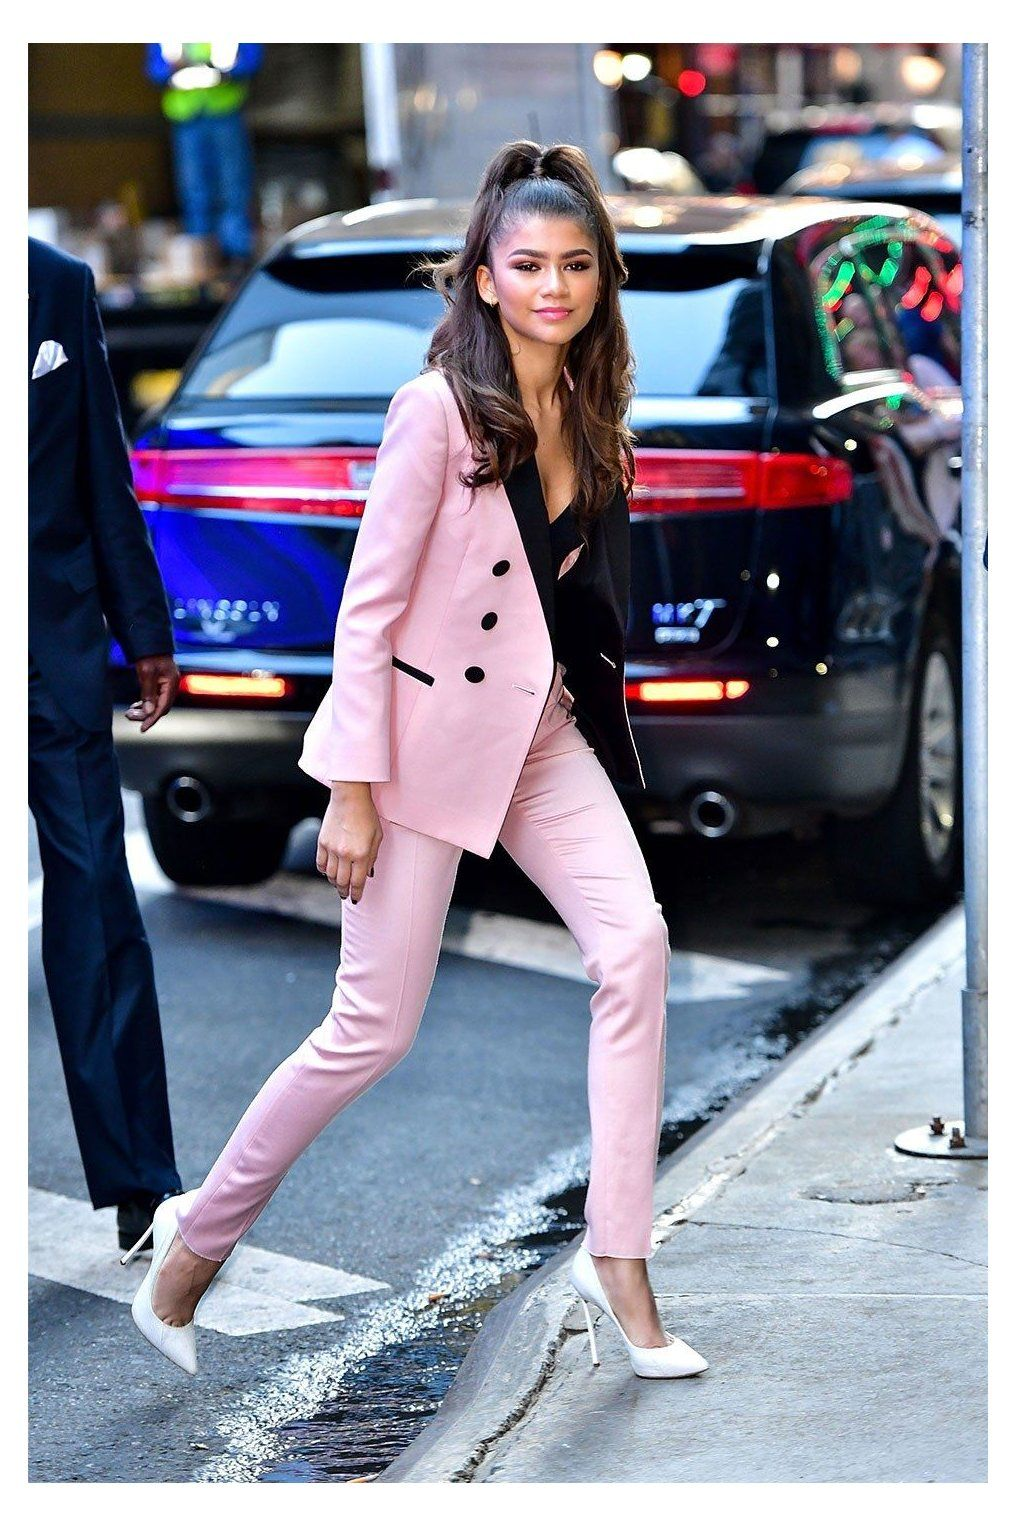 Zendaya Channels Business Barbie in Pink Suit zendaya pink suit The  trend lives on  Summer work outfits Blazer outfits for women Cool  outfits